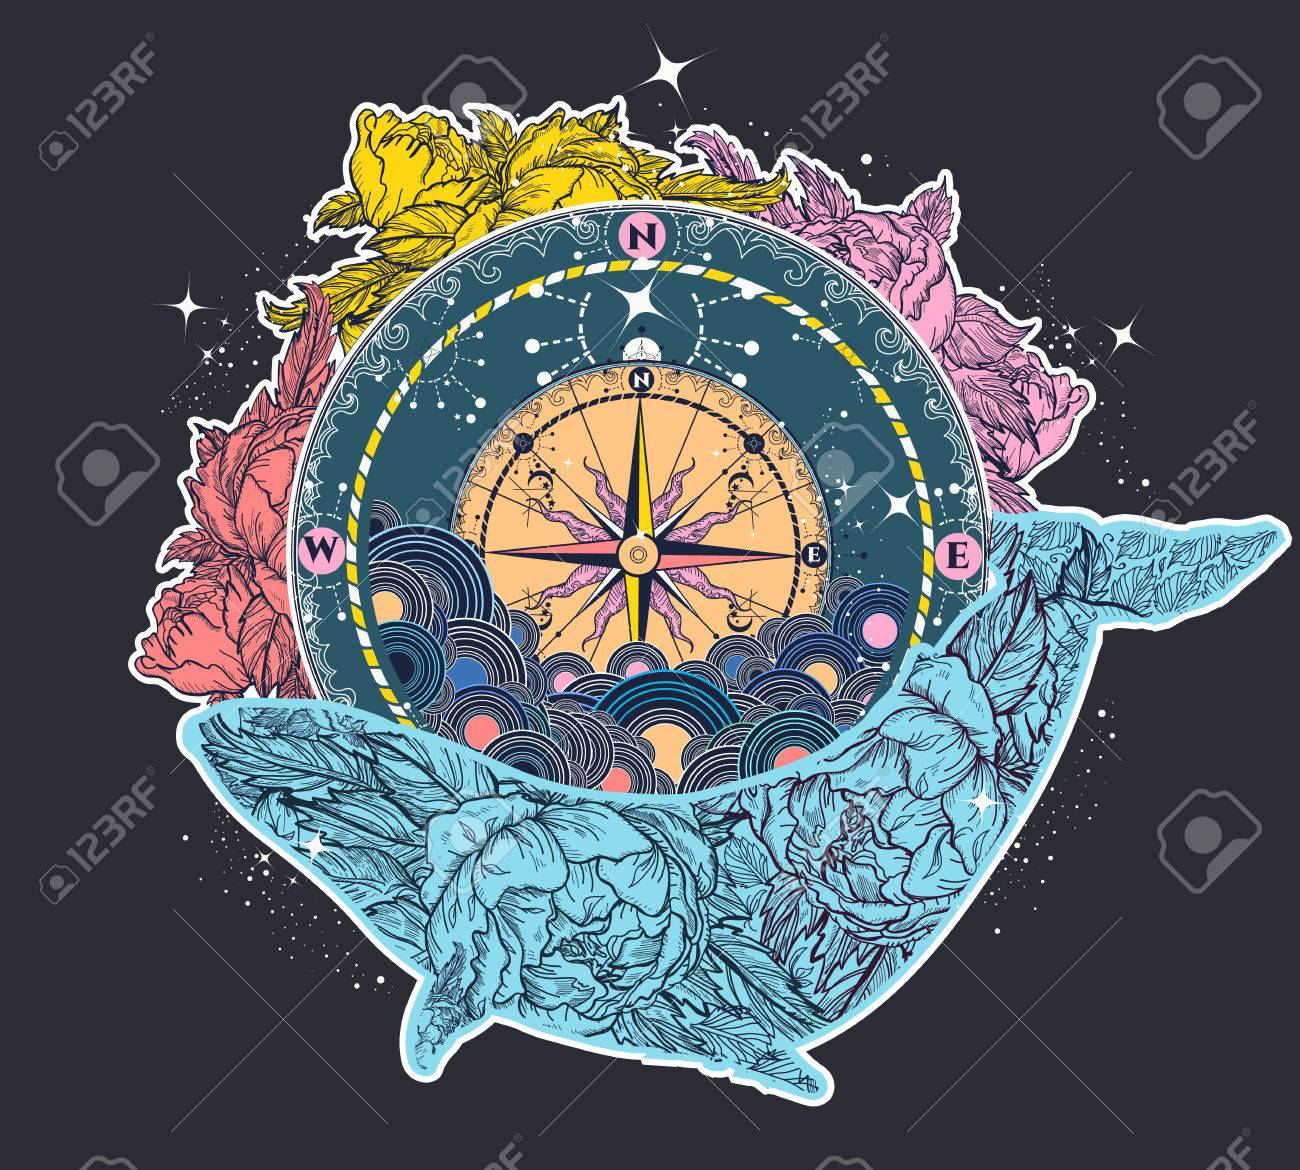 Antique compass and floral whale tattoo art. Mystical symbol of adventure, dreams. Compass and Whale t-shirt design and color tattoo. Travel, adventure, outdoors symbol whale, marine tattoo - 79178684